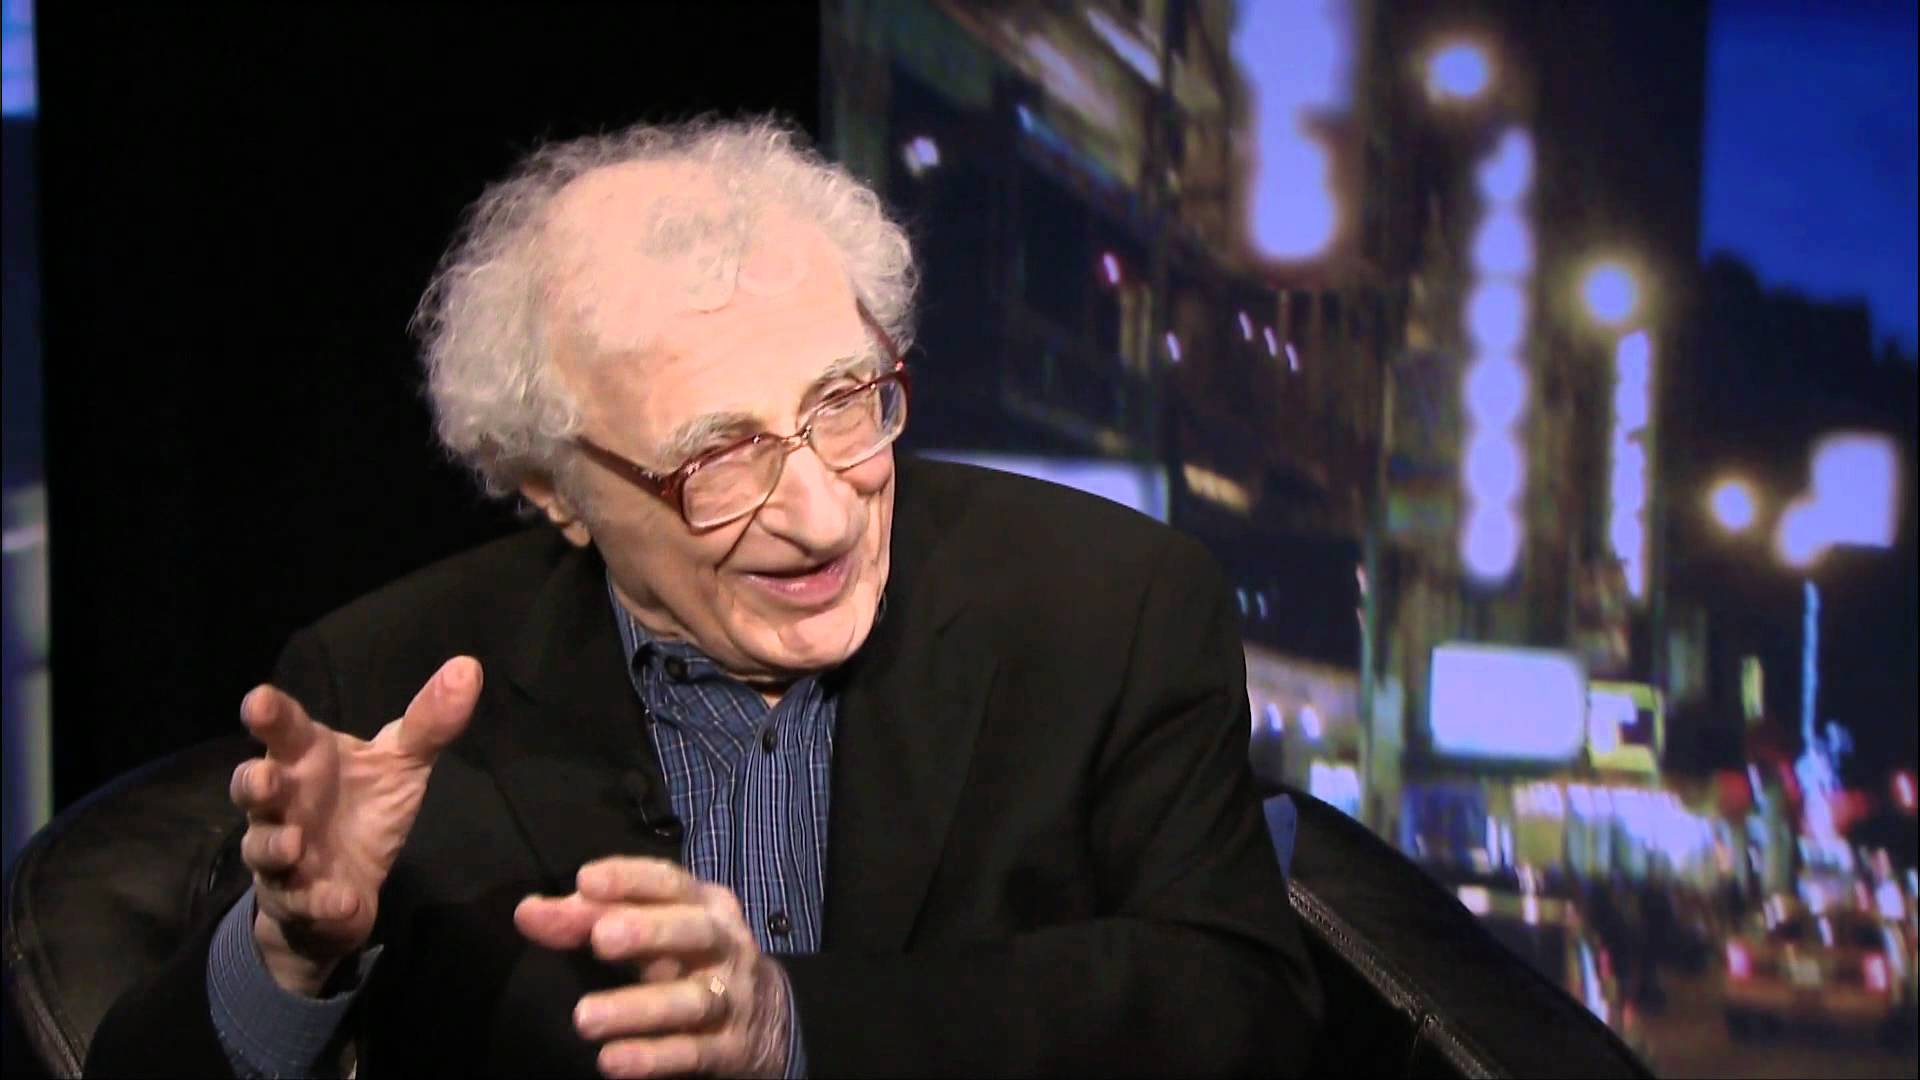 A discussion with lyricist Sheldon Harnick